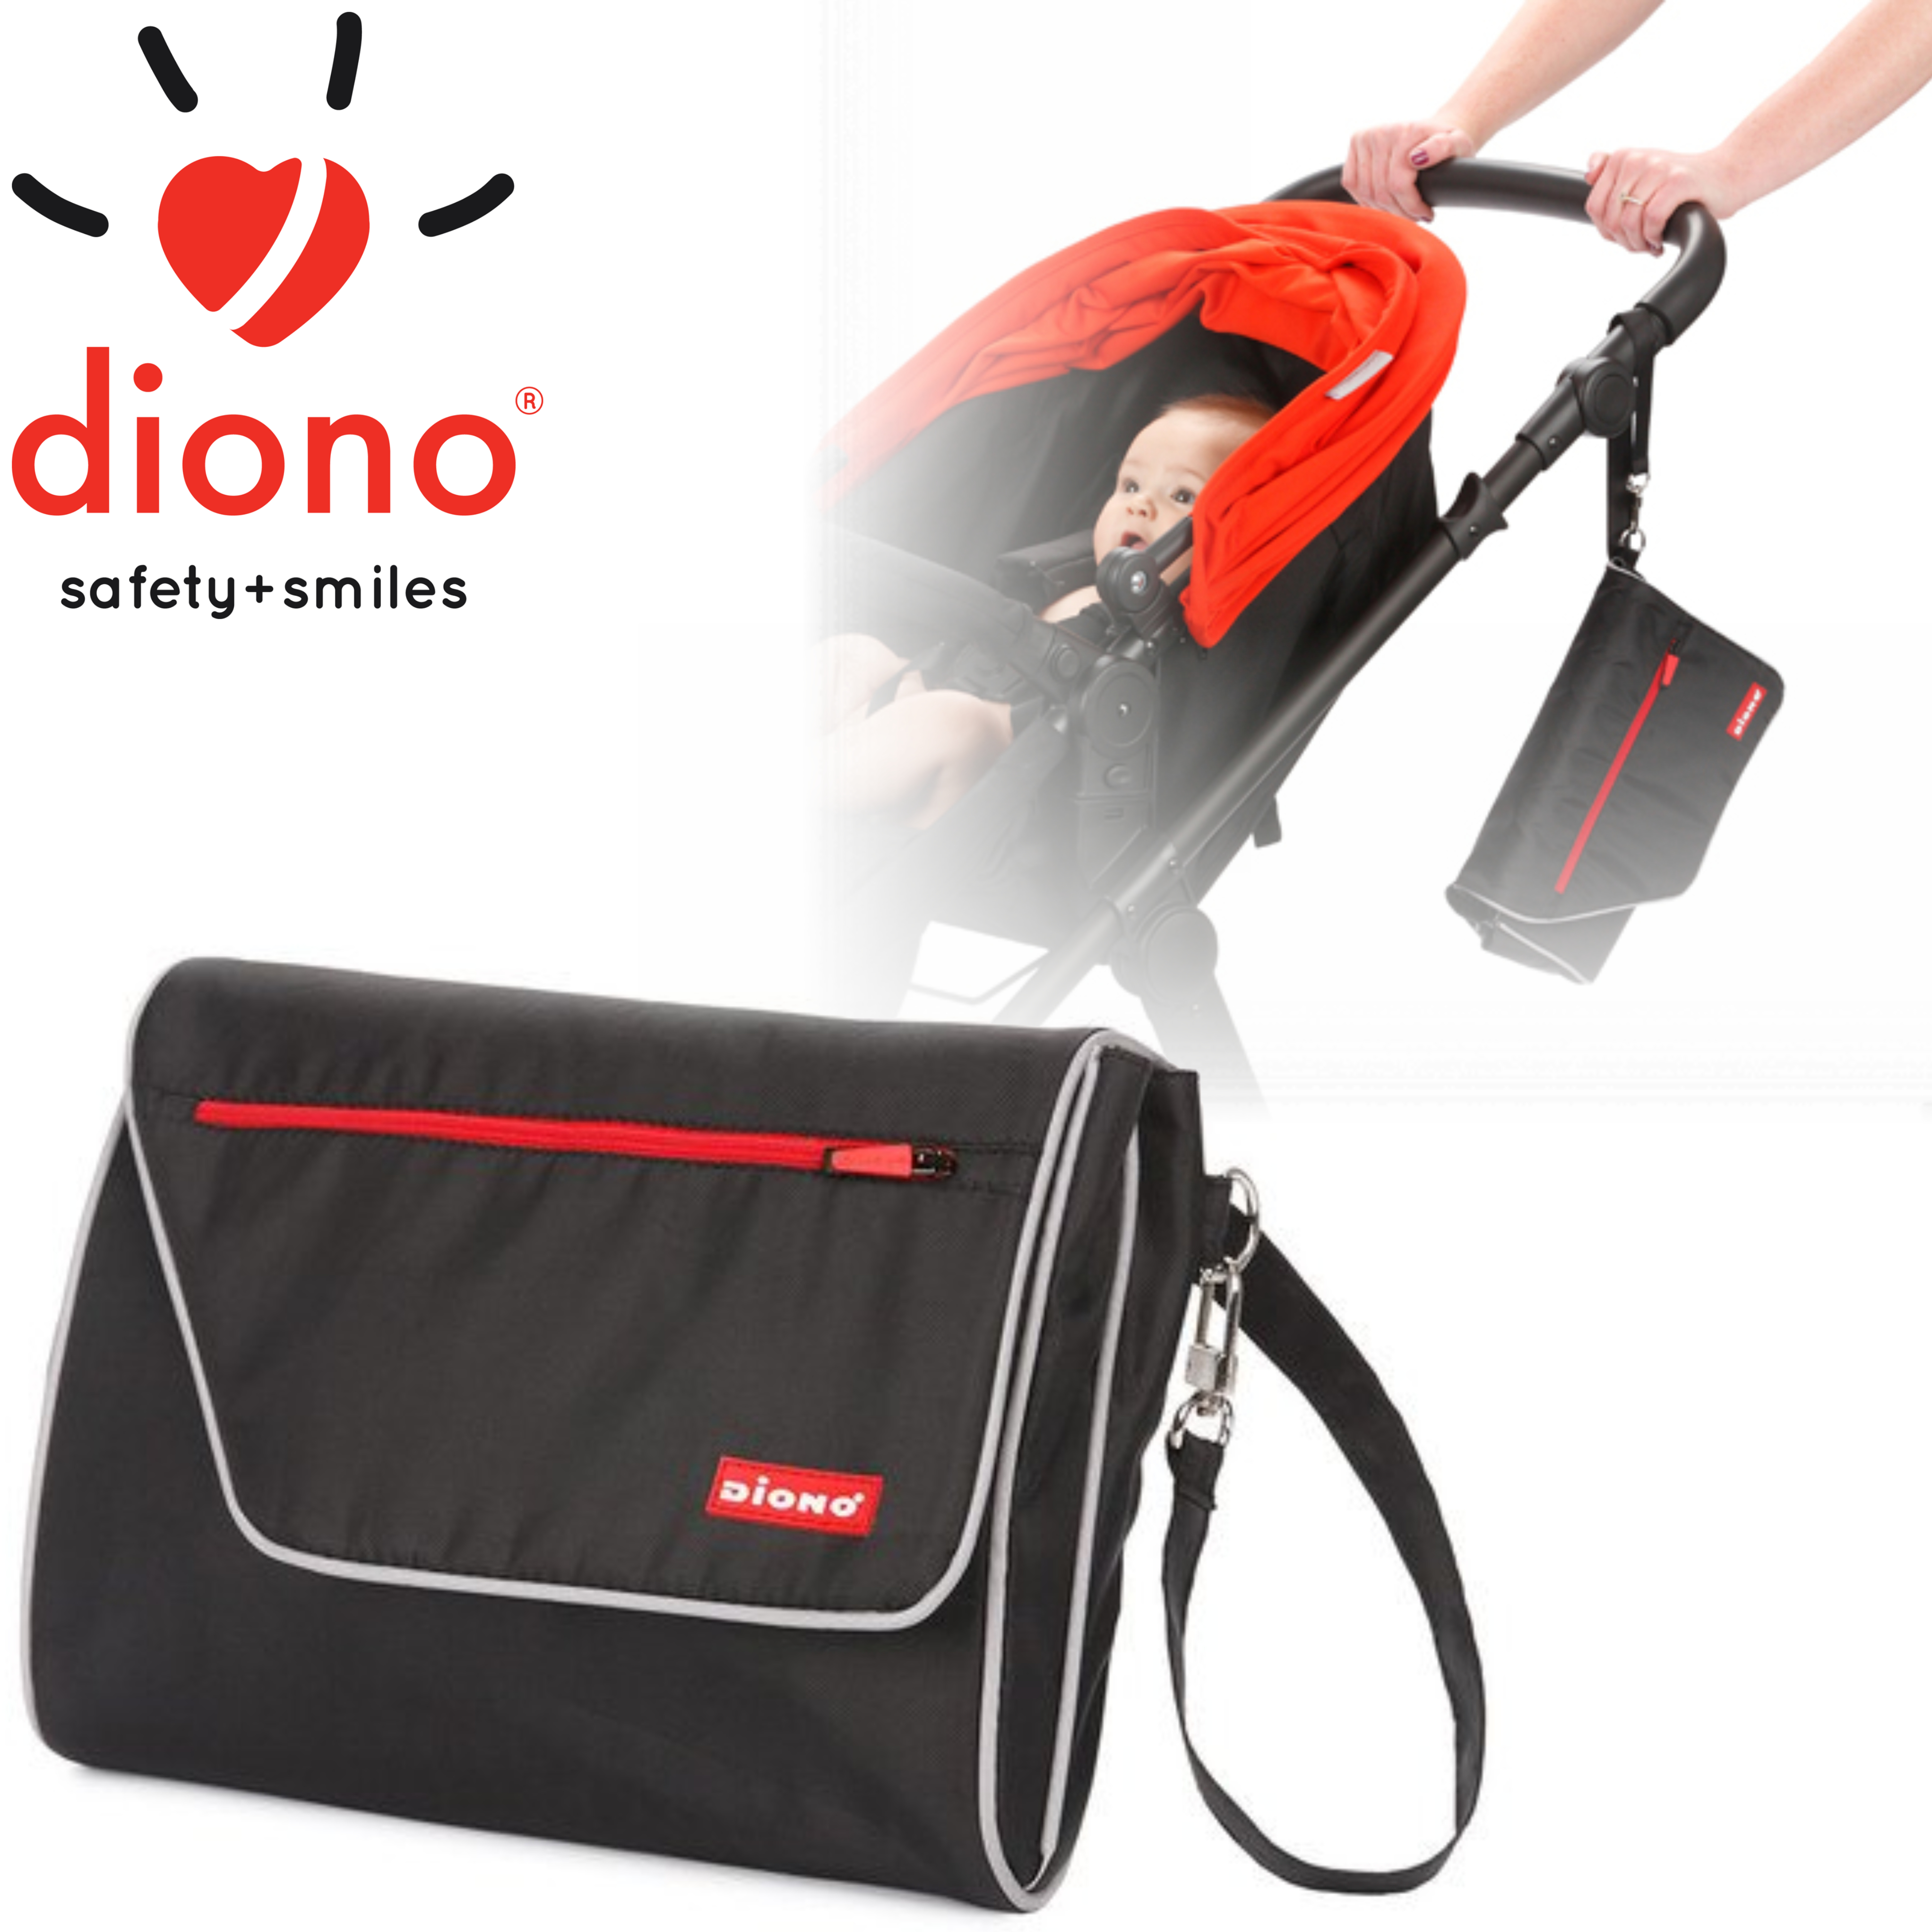 Diono Travel Baby/Toddler Nappy Changer | Comfortable Padded Mat | Unisex Design | New